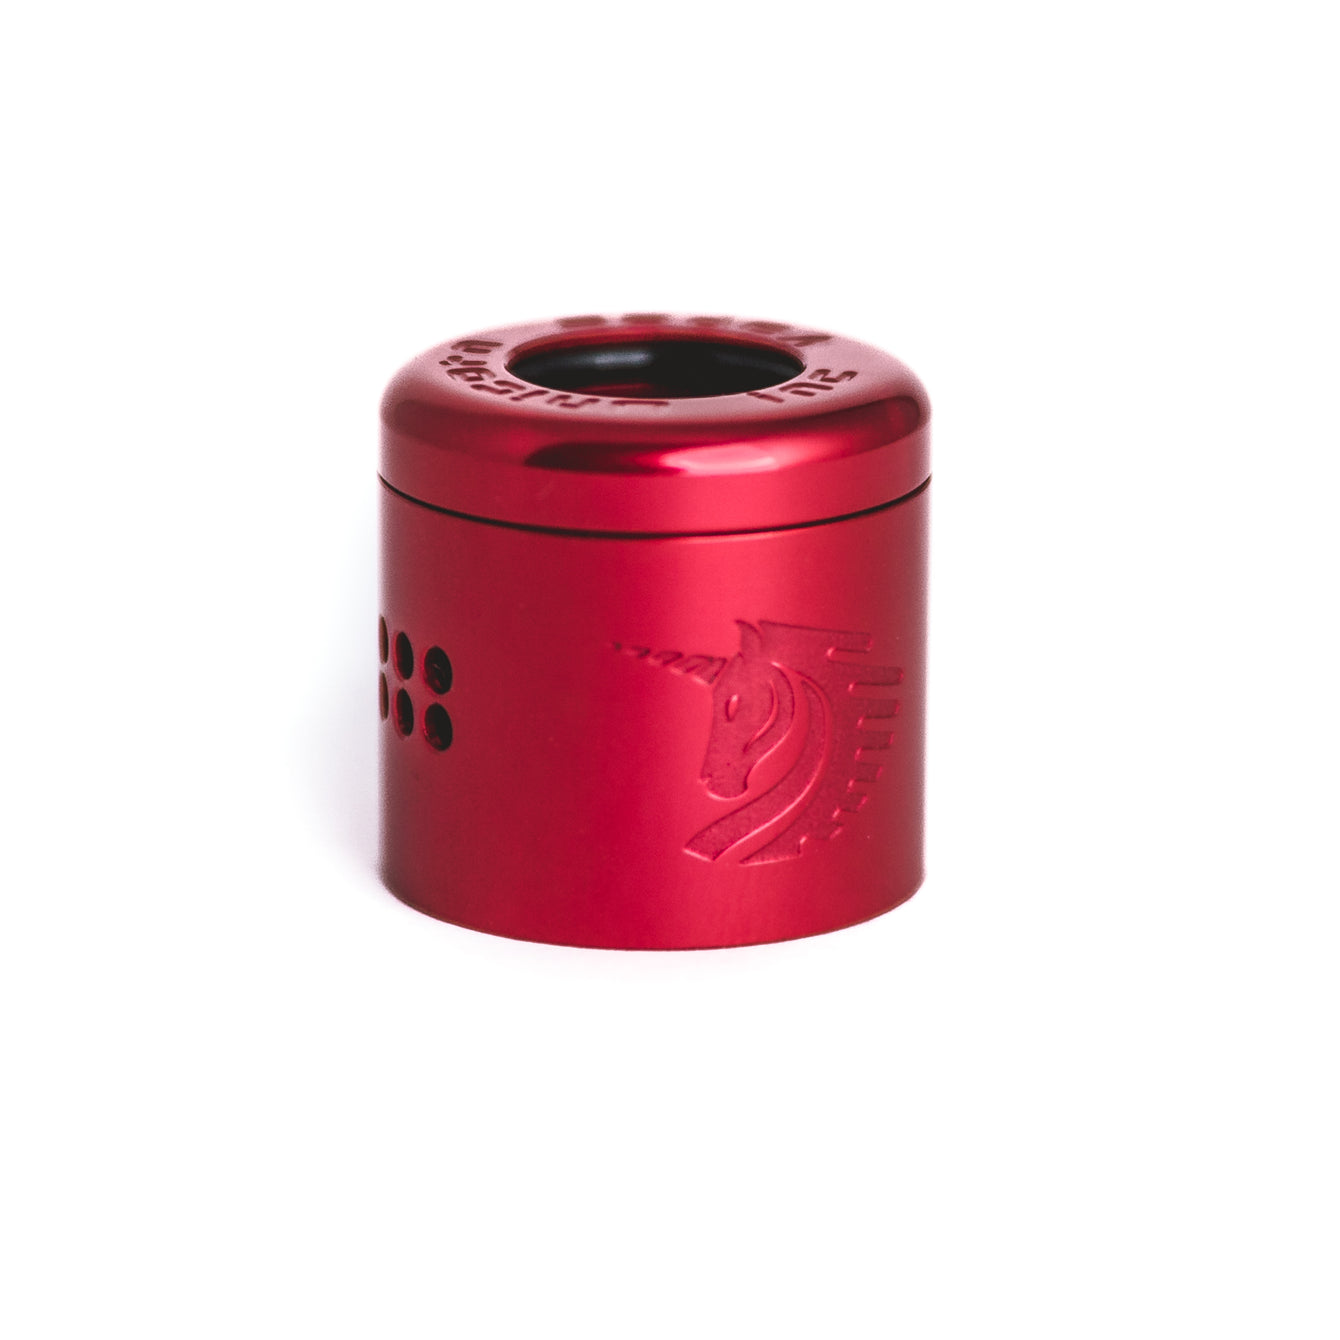 24mm Red Cap - Unicorn RDA